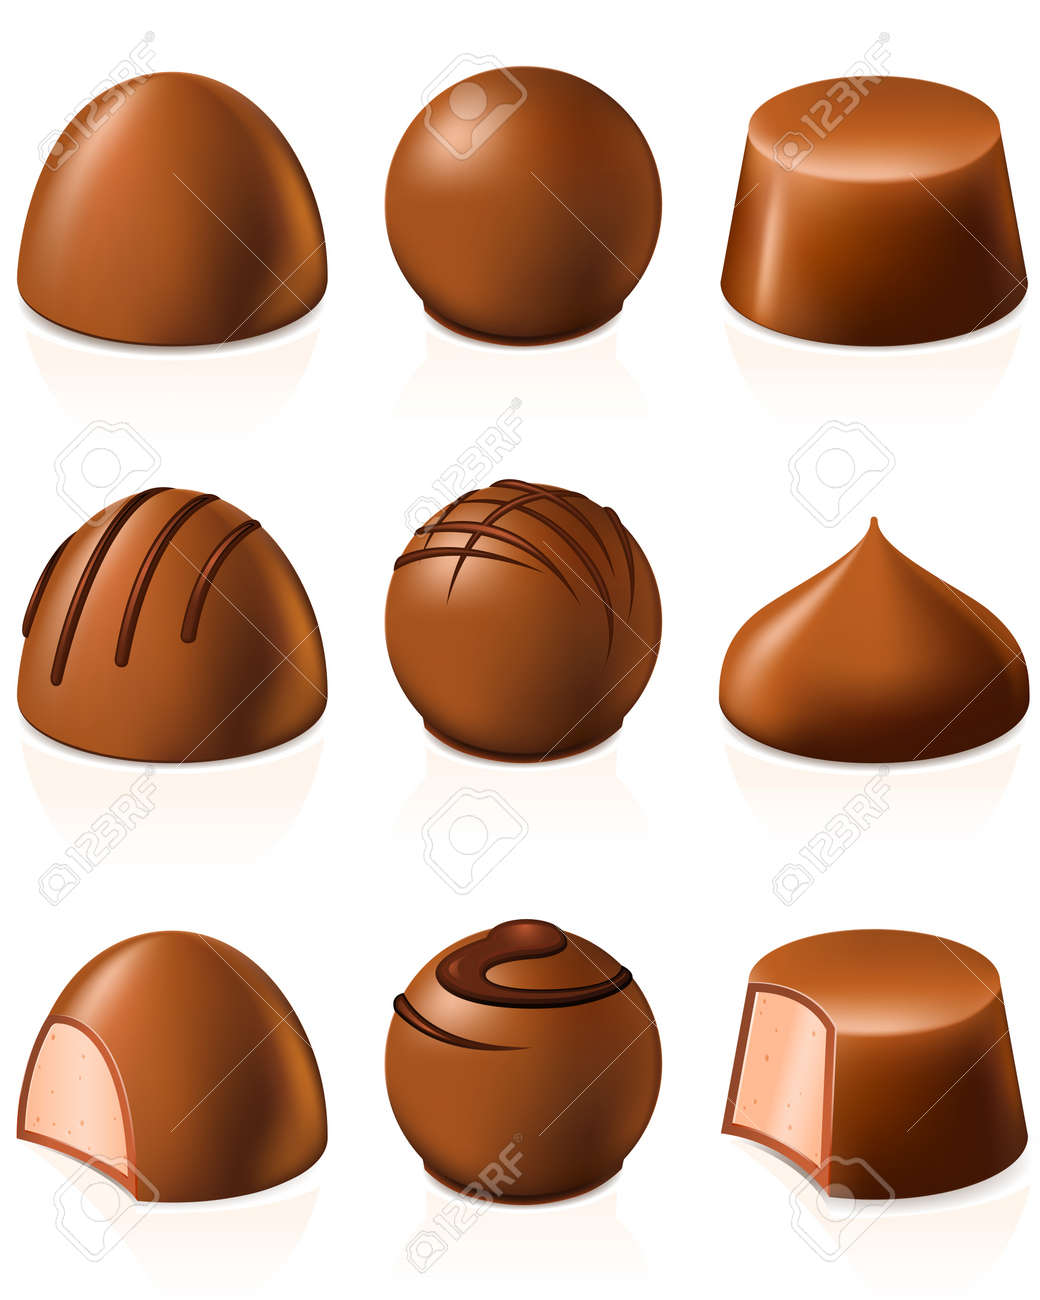 Chocolate Candy Images & Stock Pictures. Royalty Free Chocolate ...